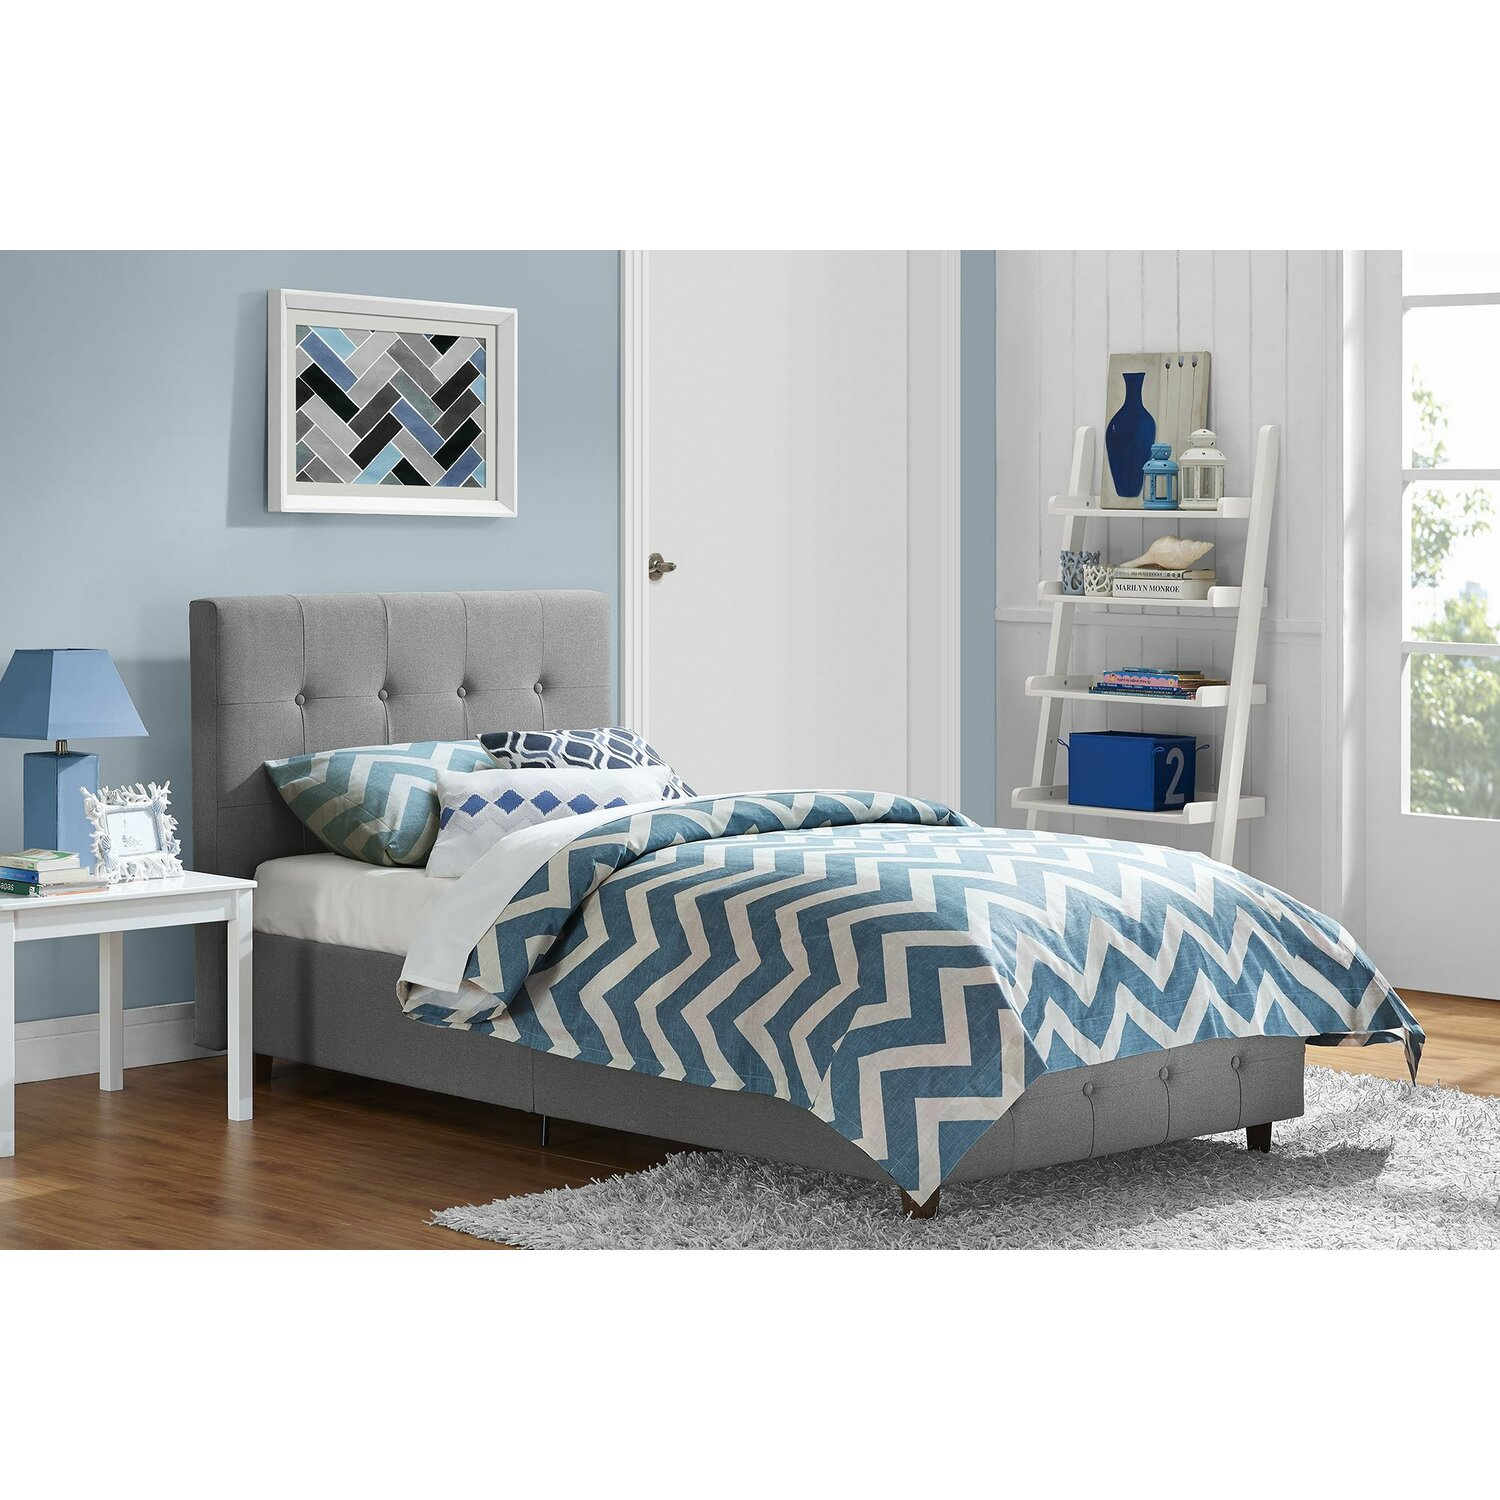 Best Price American Legacy Innerspring (Innercoil) Full Size Mattress Only